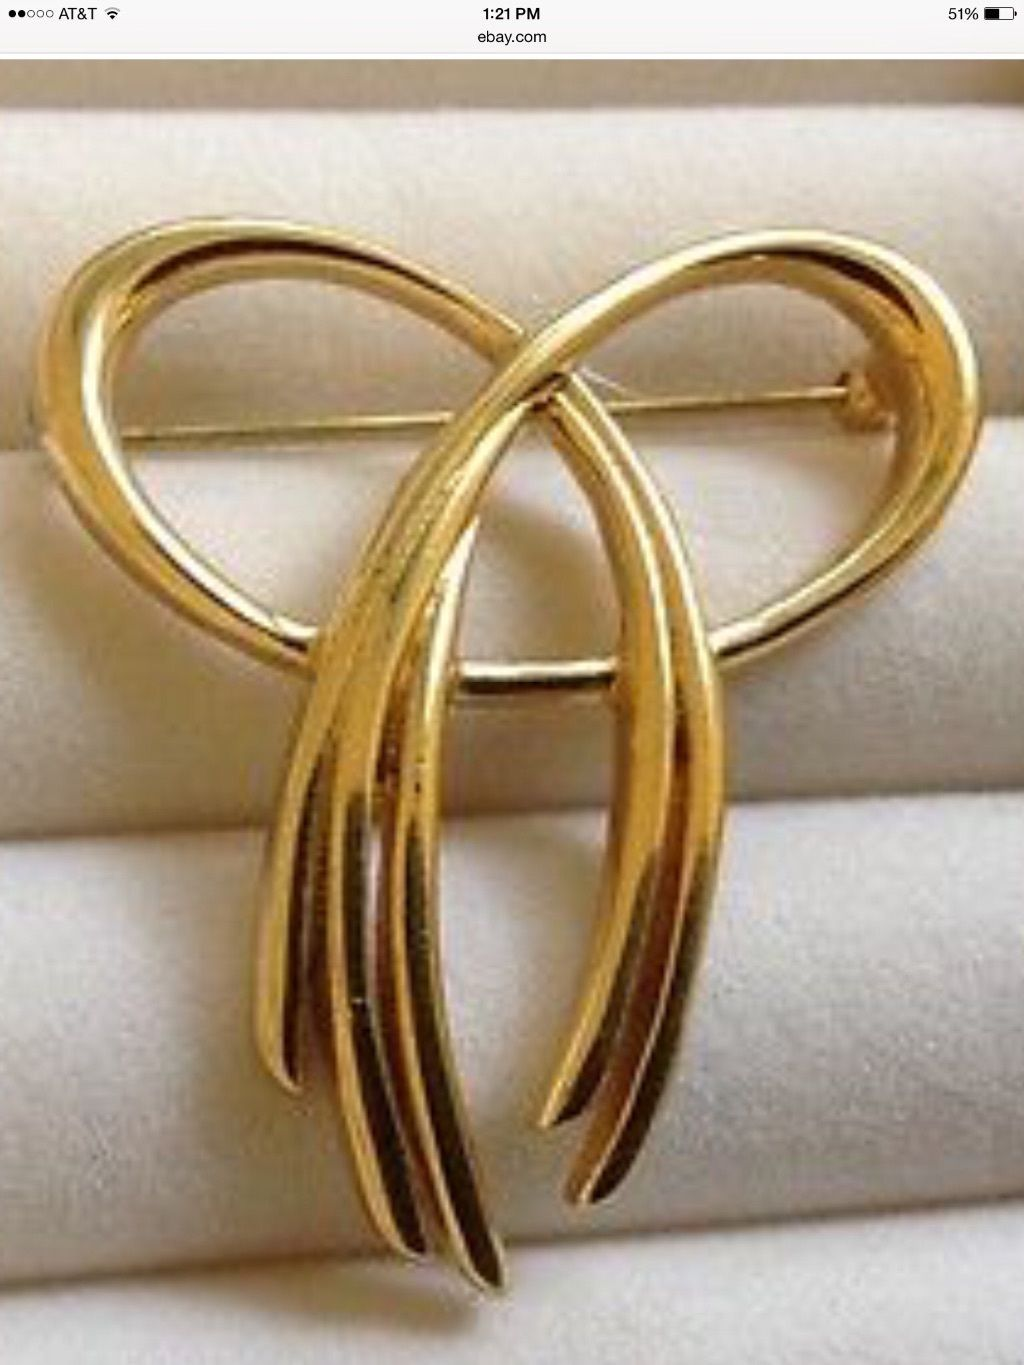 Primary image for Brooch or Pin Trifari Signed Gold Tone Metal Bow Design.